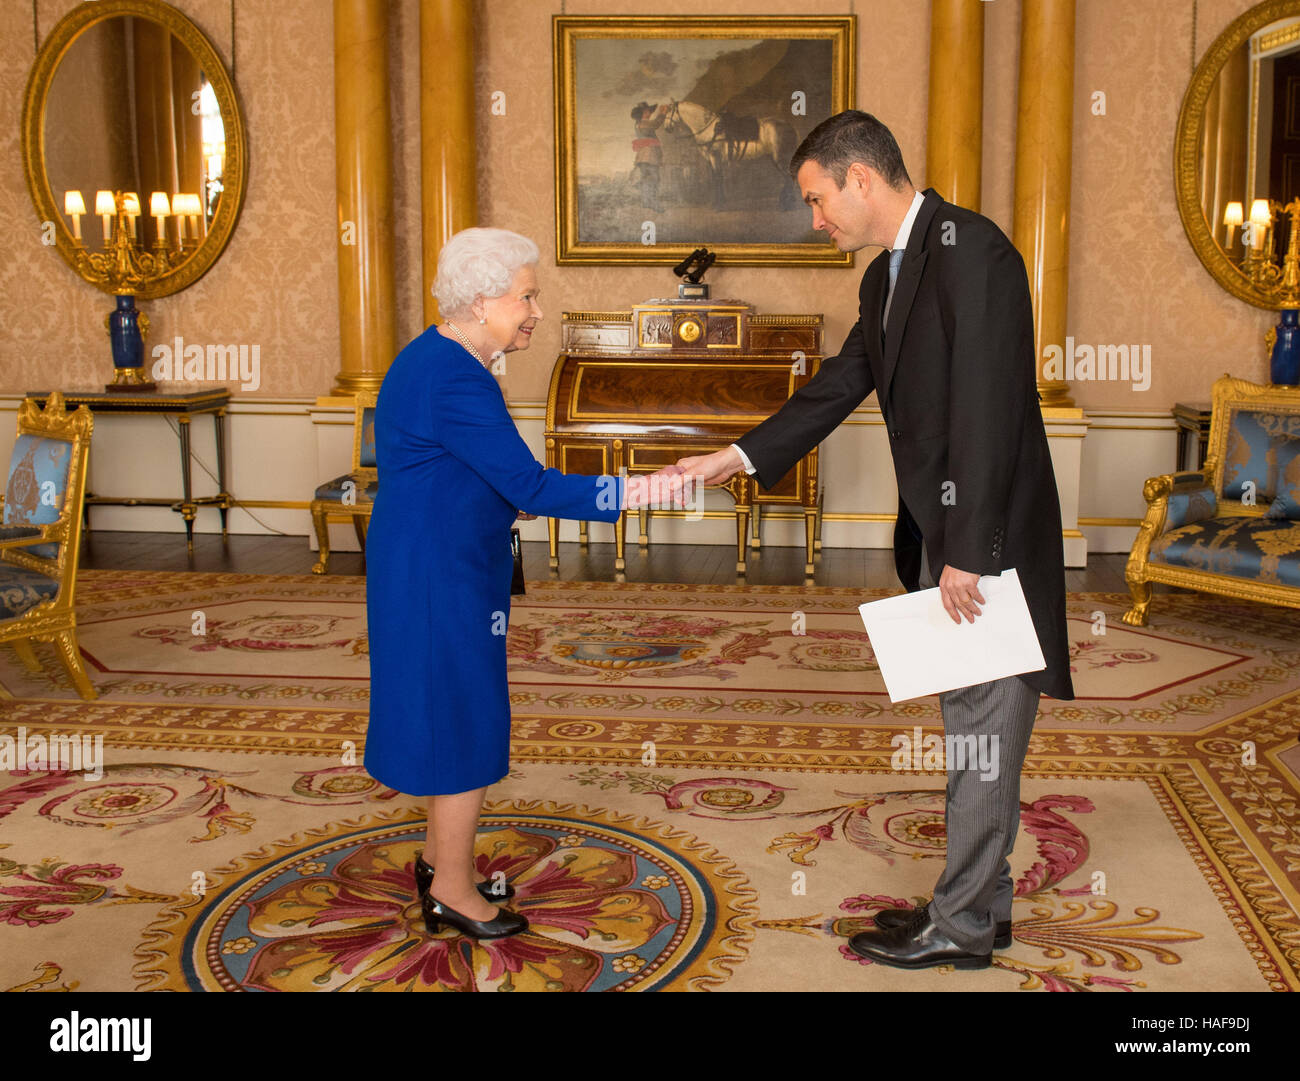 Queen Elizabeth II meets the Ambassador of Sweden Torbjorn Sohlstrom during a private audience at Buckingham Palace, - Stock Image